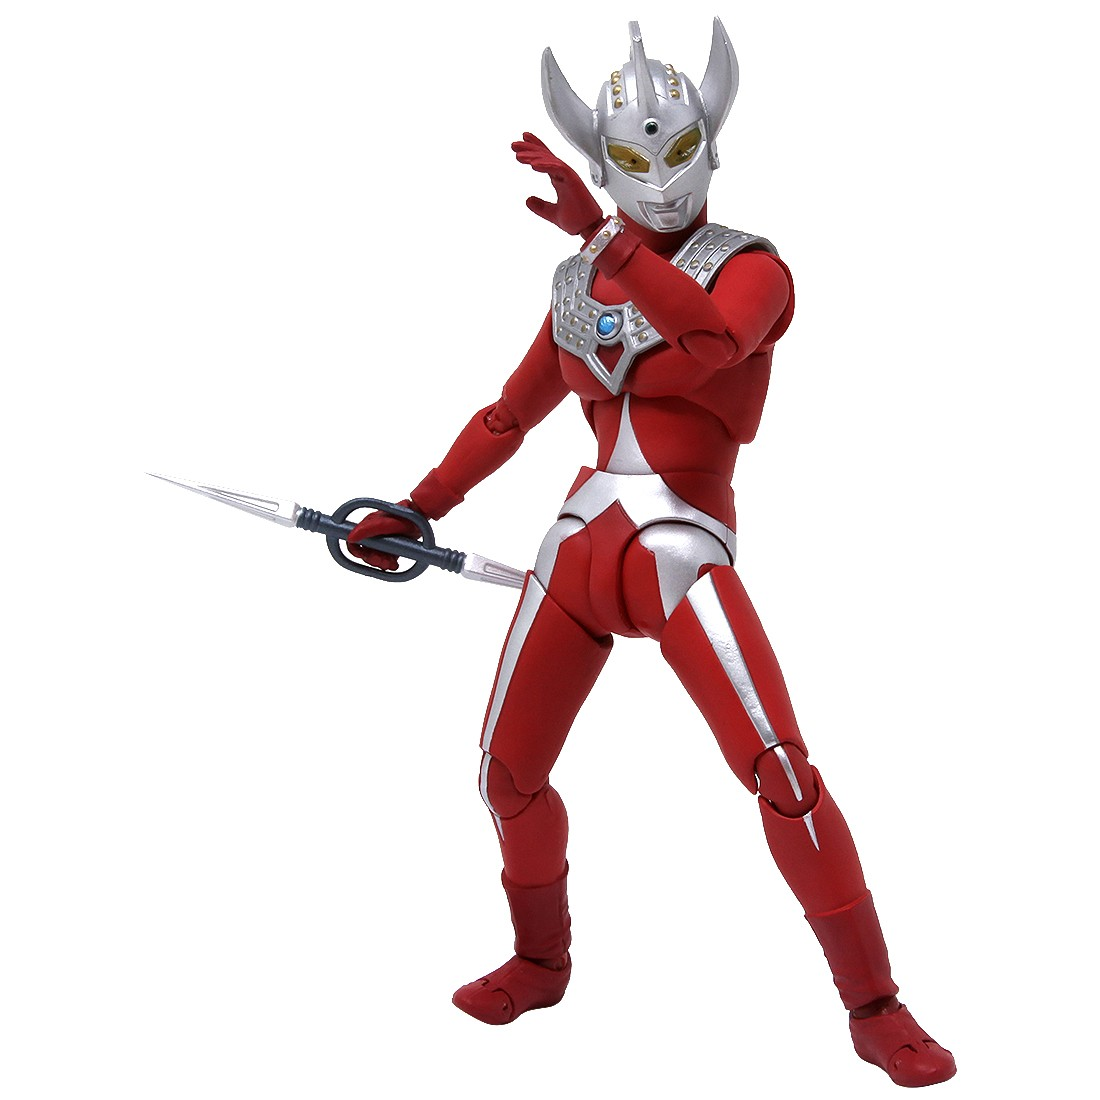 Bandai S.H.Figuarts Ultraman Ginga Ultraman Taro Figure (red)